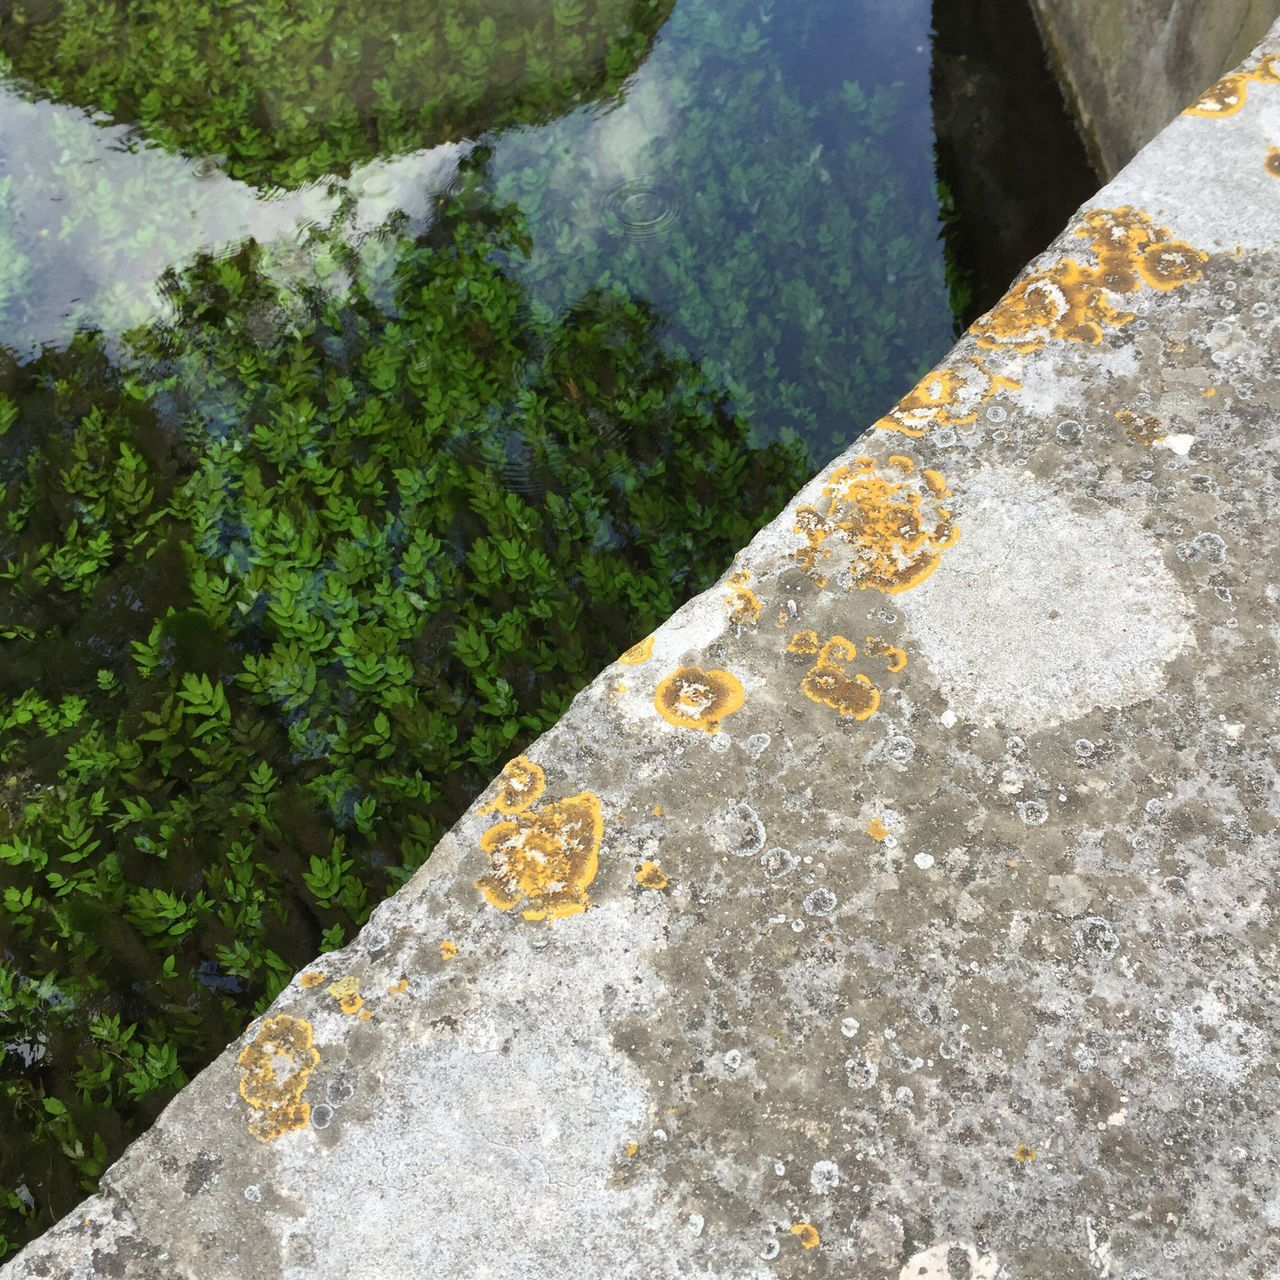 France Occitanie Gard Stone Material Outdoors Day Chanel The South Nature_collection Nature Photography Bridge Channel